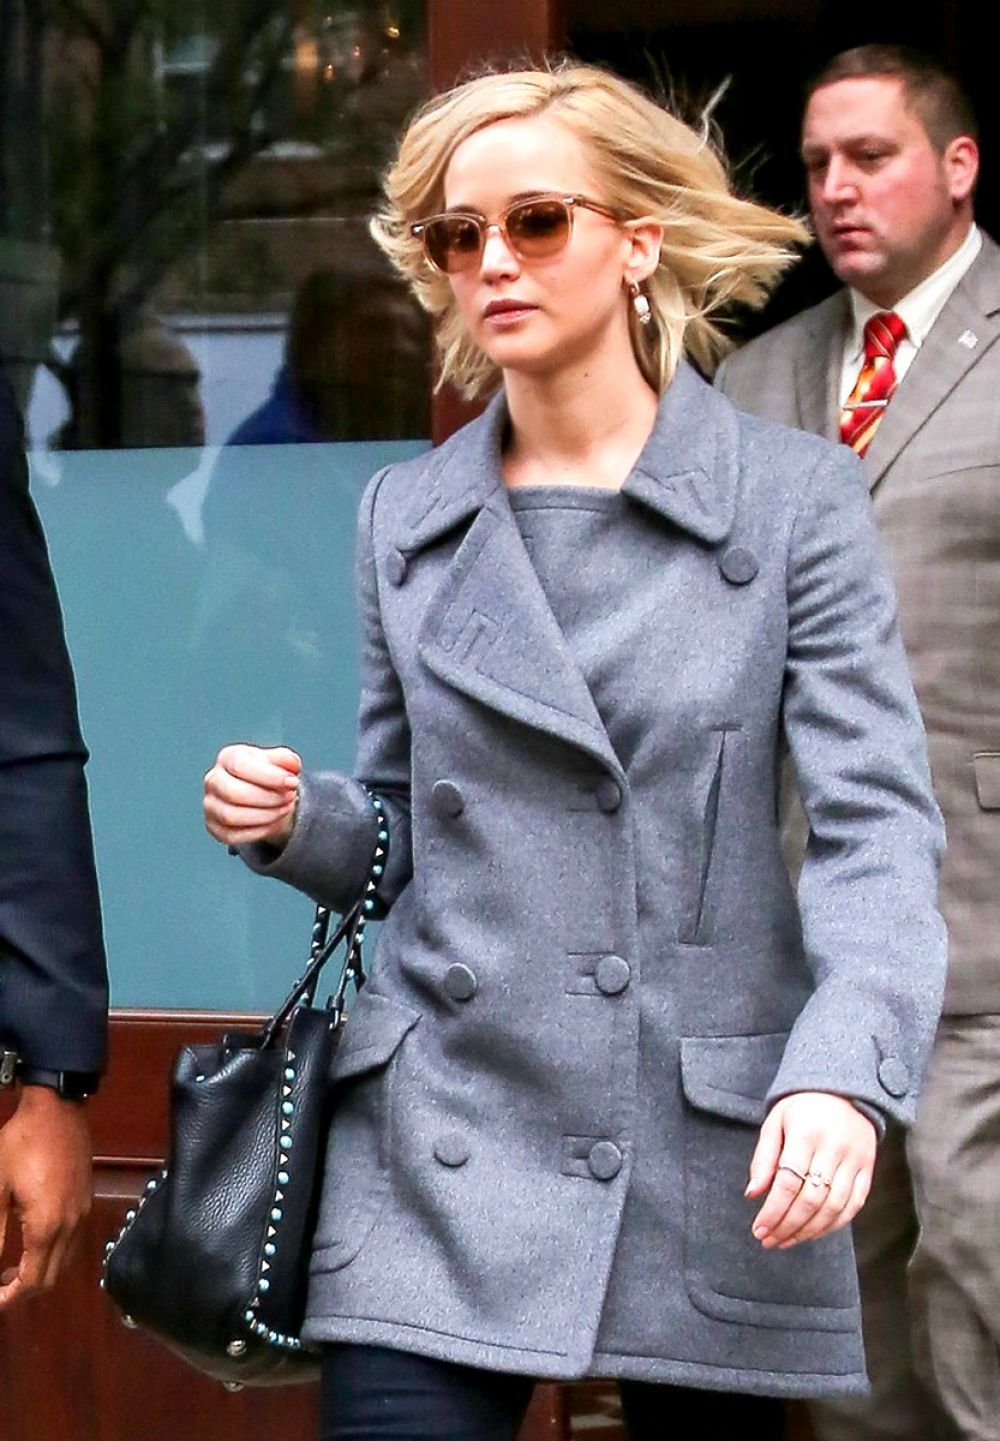 Jennifer lawrence leaving her hotel in nyc - 2019 year